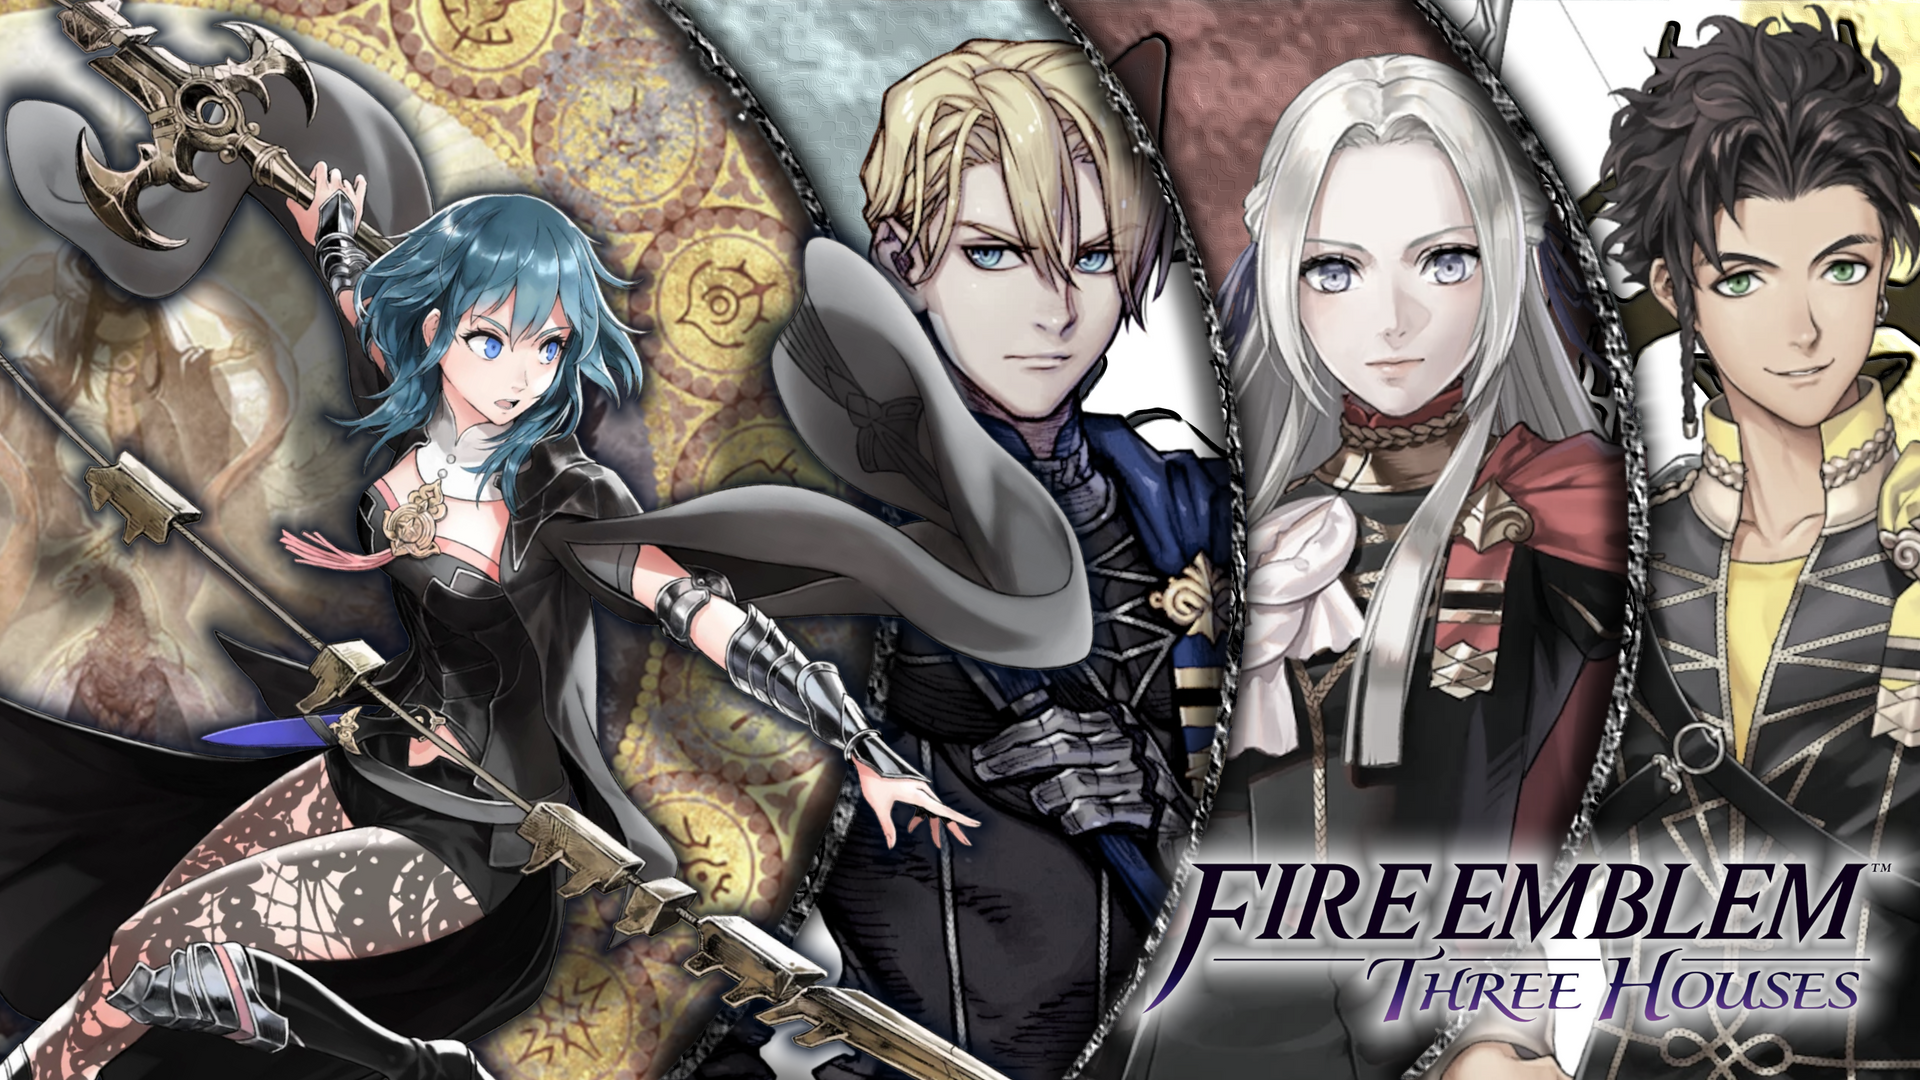 Fire Emblem Heroes Wallpaper Three Houses 4K by IncognitoZA on DeviantArt